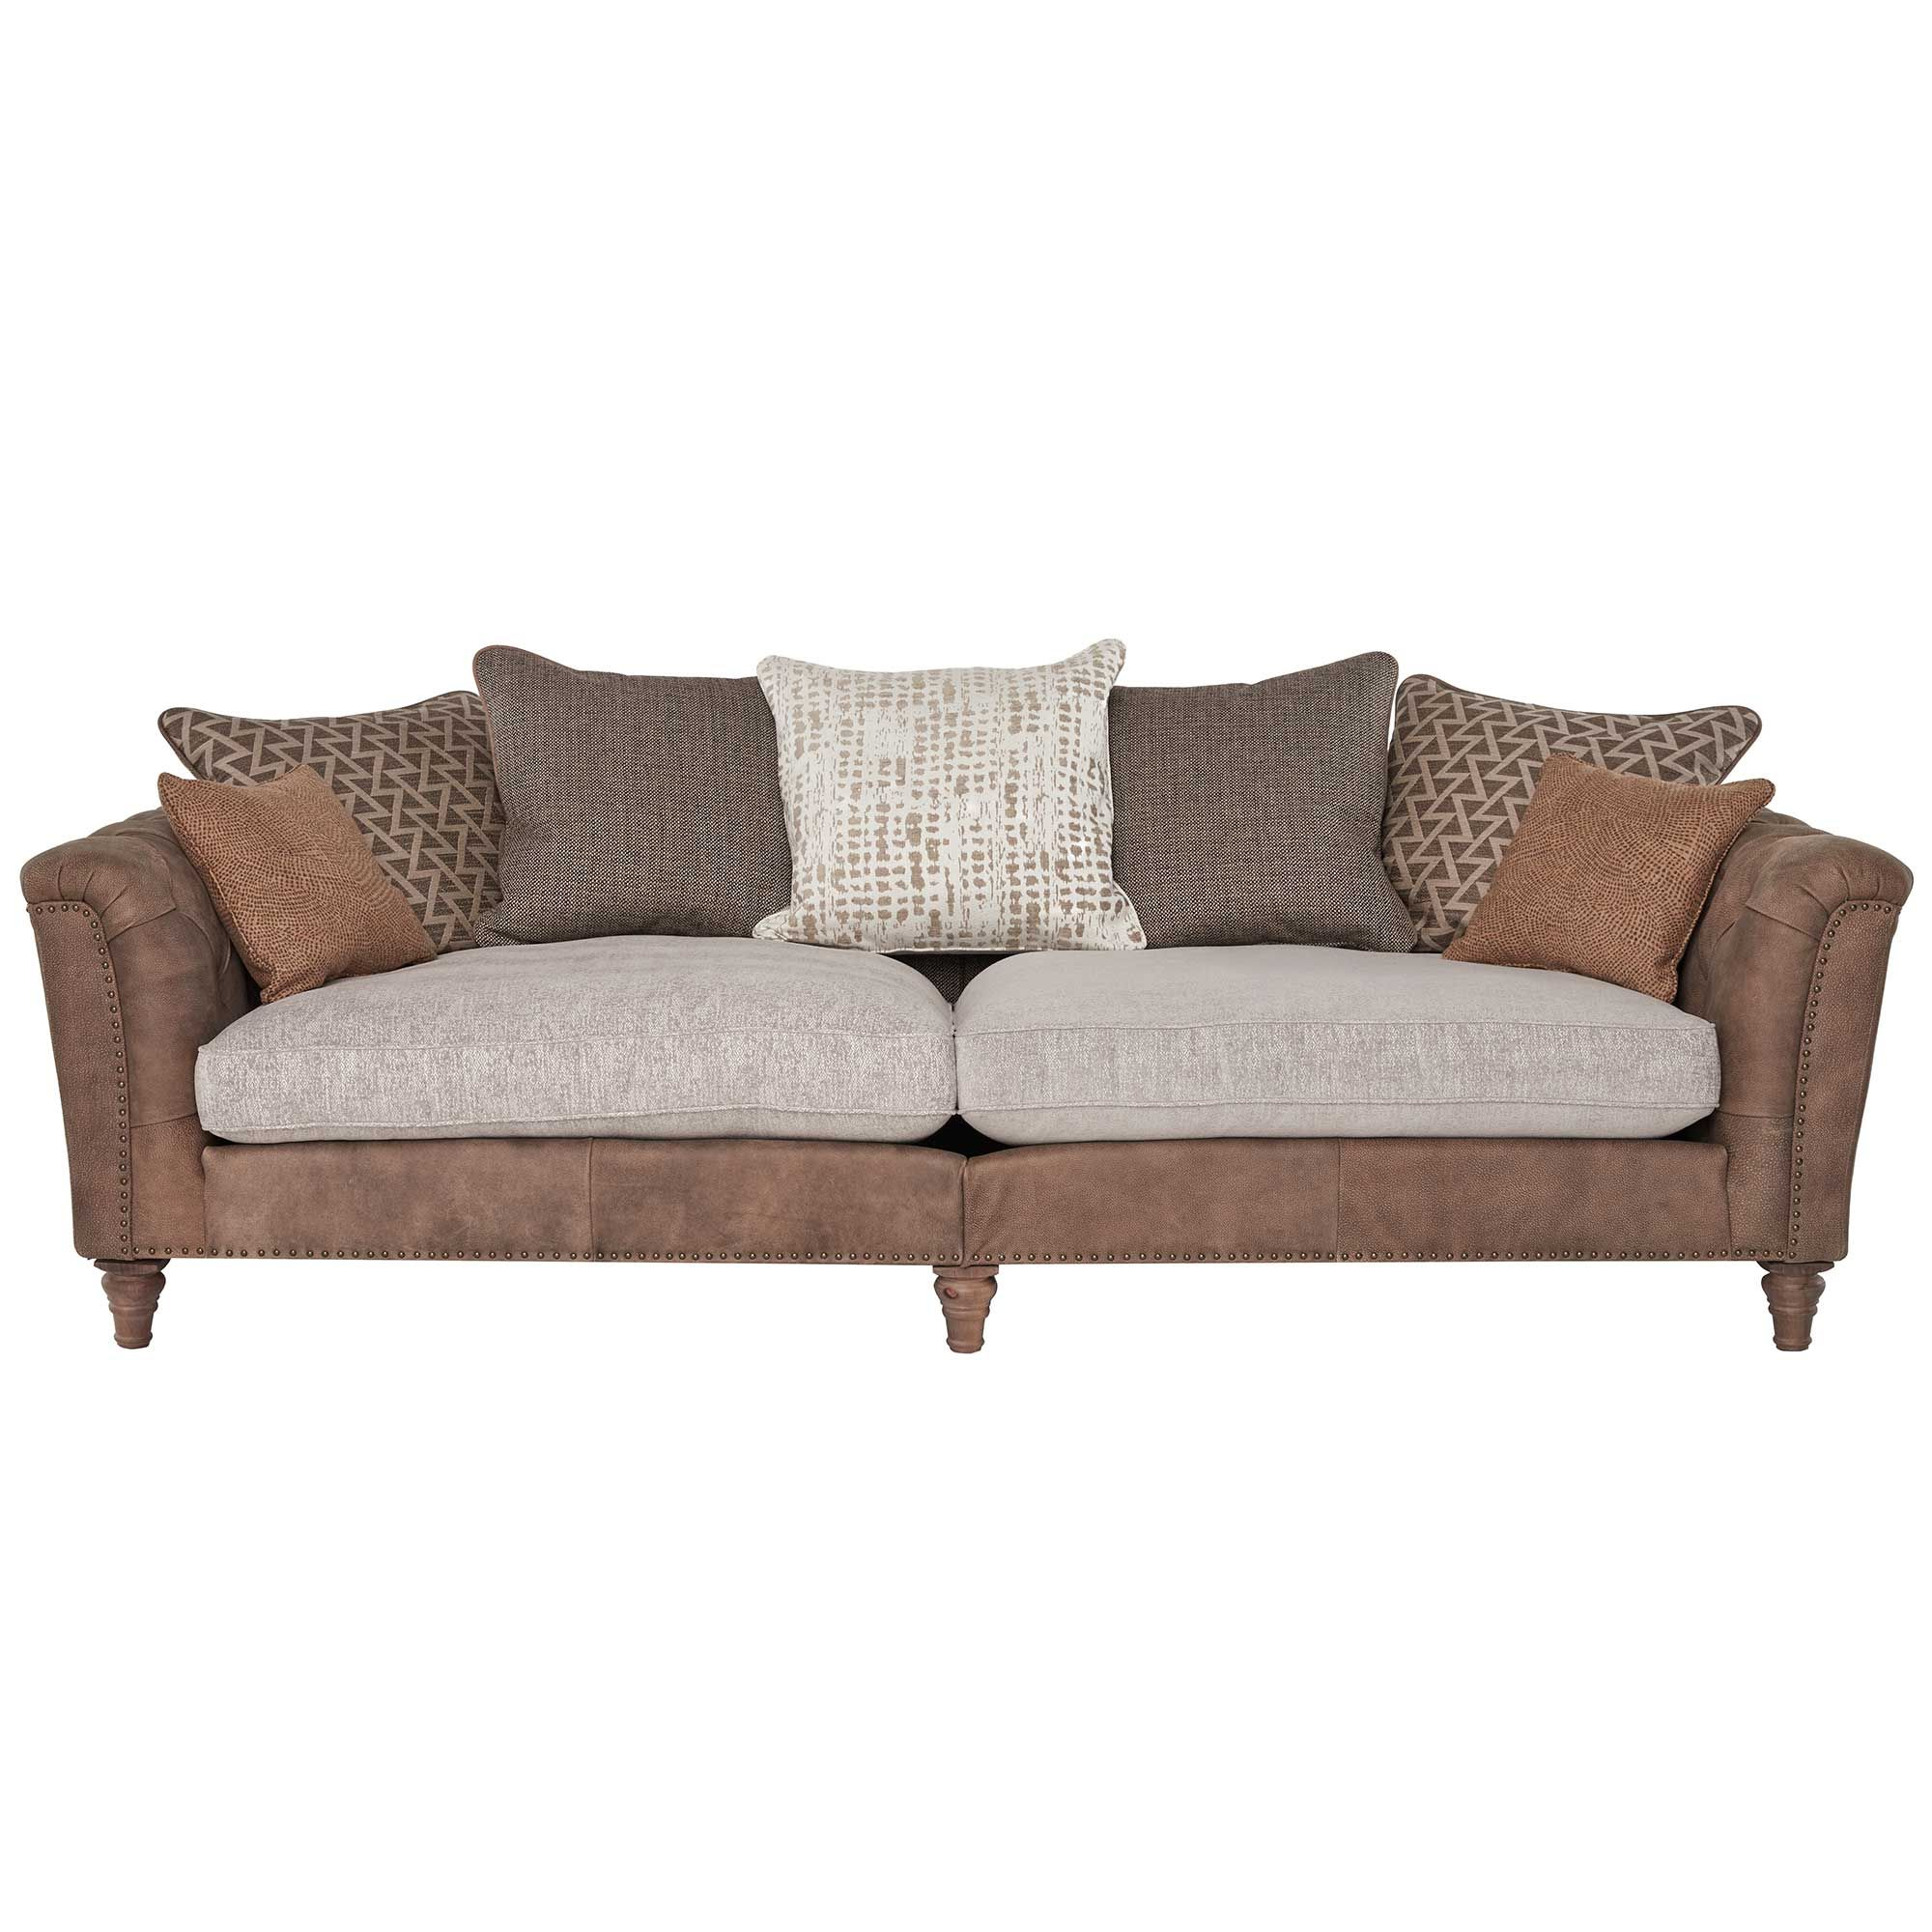 Darwin Grand Split Leather And Fabric Mix Pillow Back Sofa Available Online At Barker Stonehouse Browse Our Fab Formal Living Room Decor Sofa Mixing Fabrics